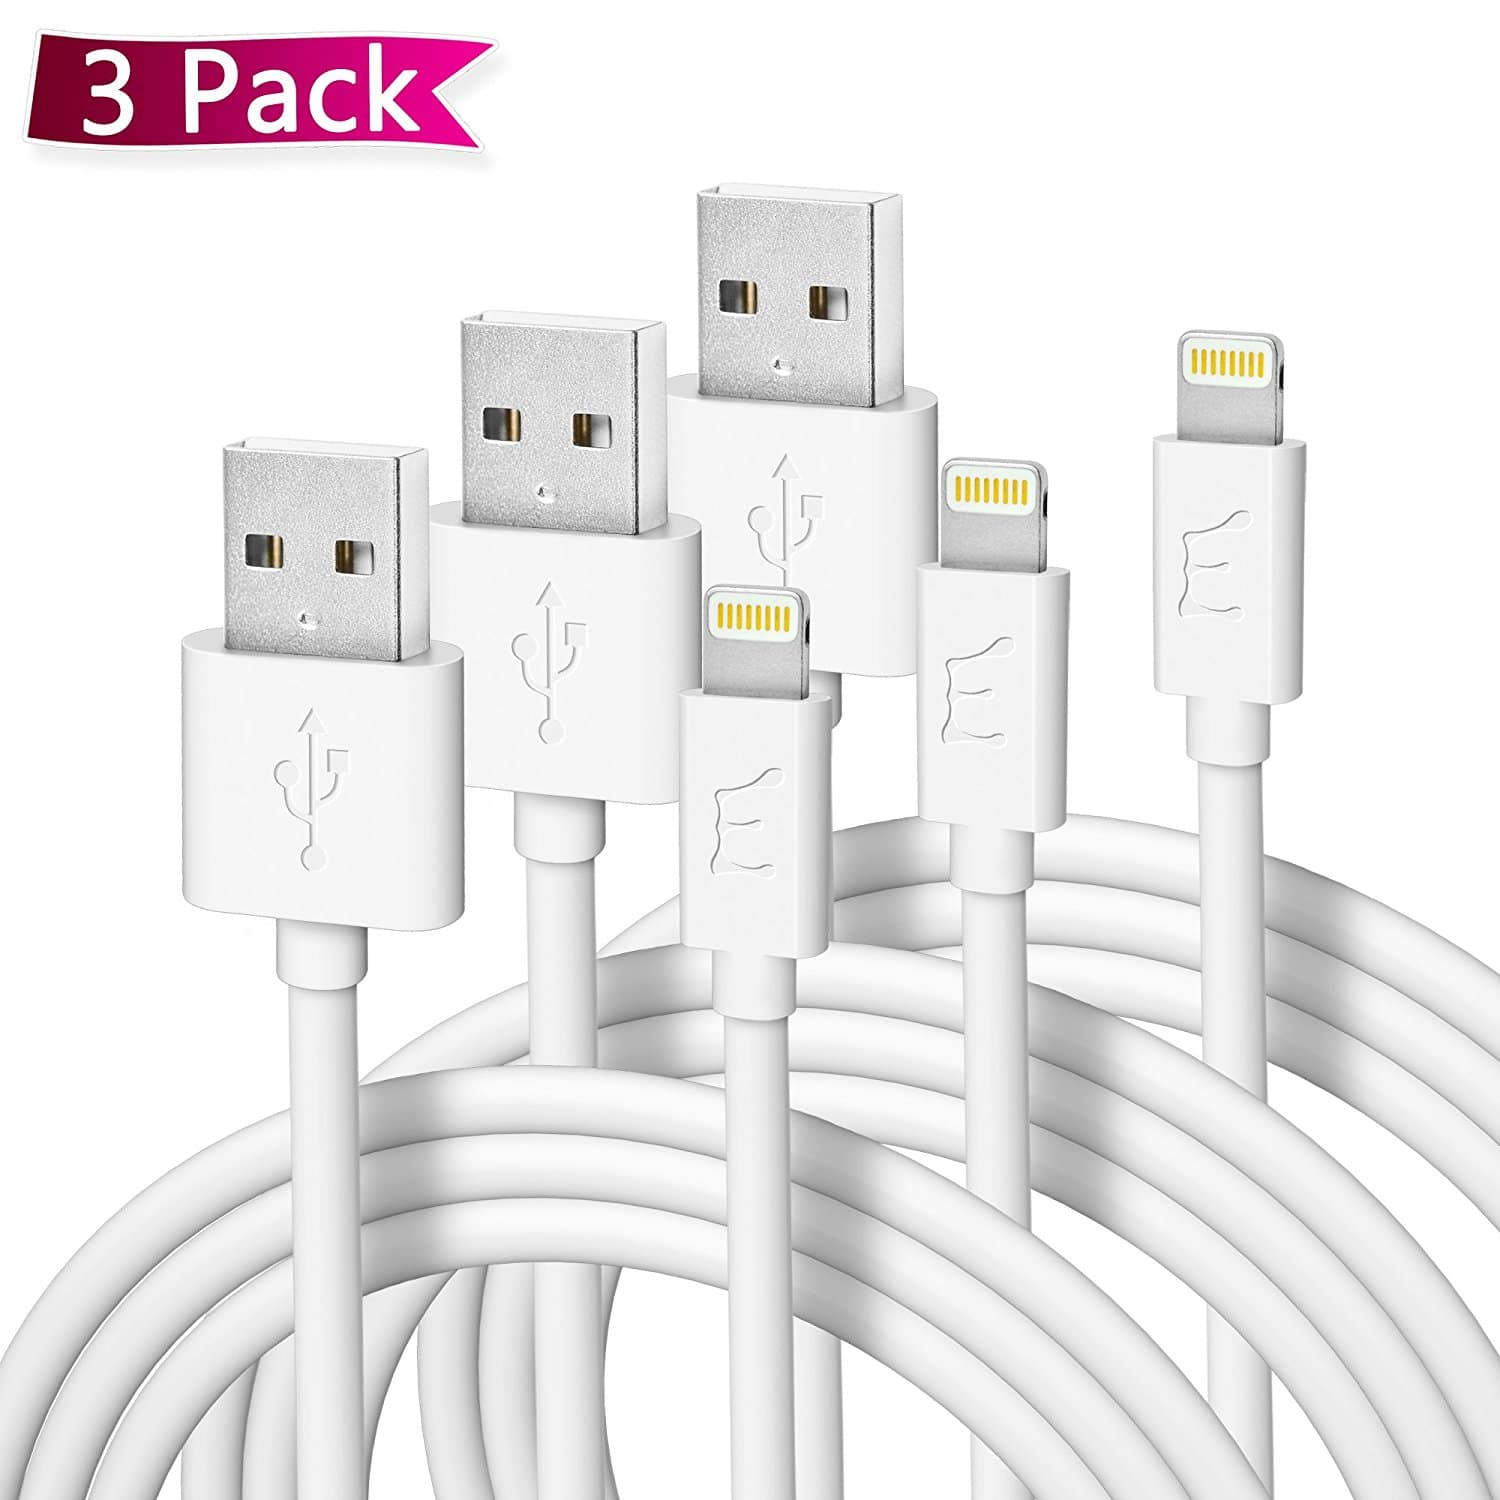 6' Apple MFI-Certified Lightning Charging Cable X3 Pack $9.99